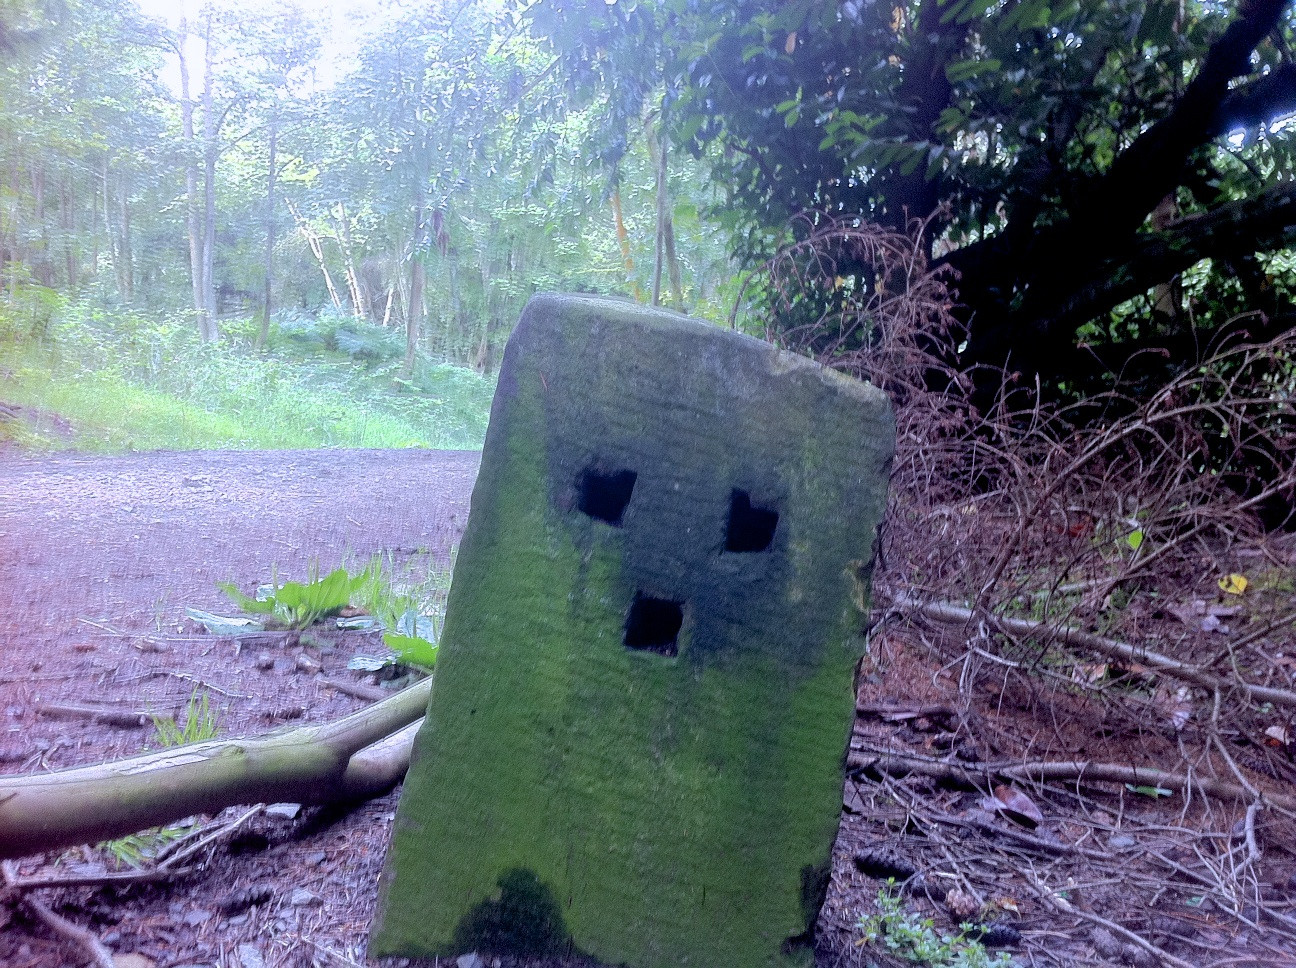 Minecraft Creeper In Real Life Sad real life creeper